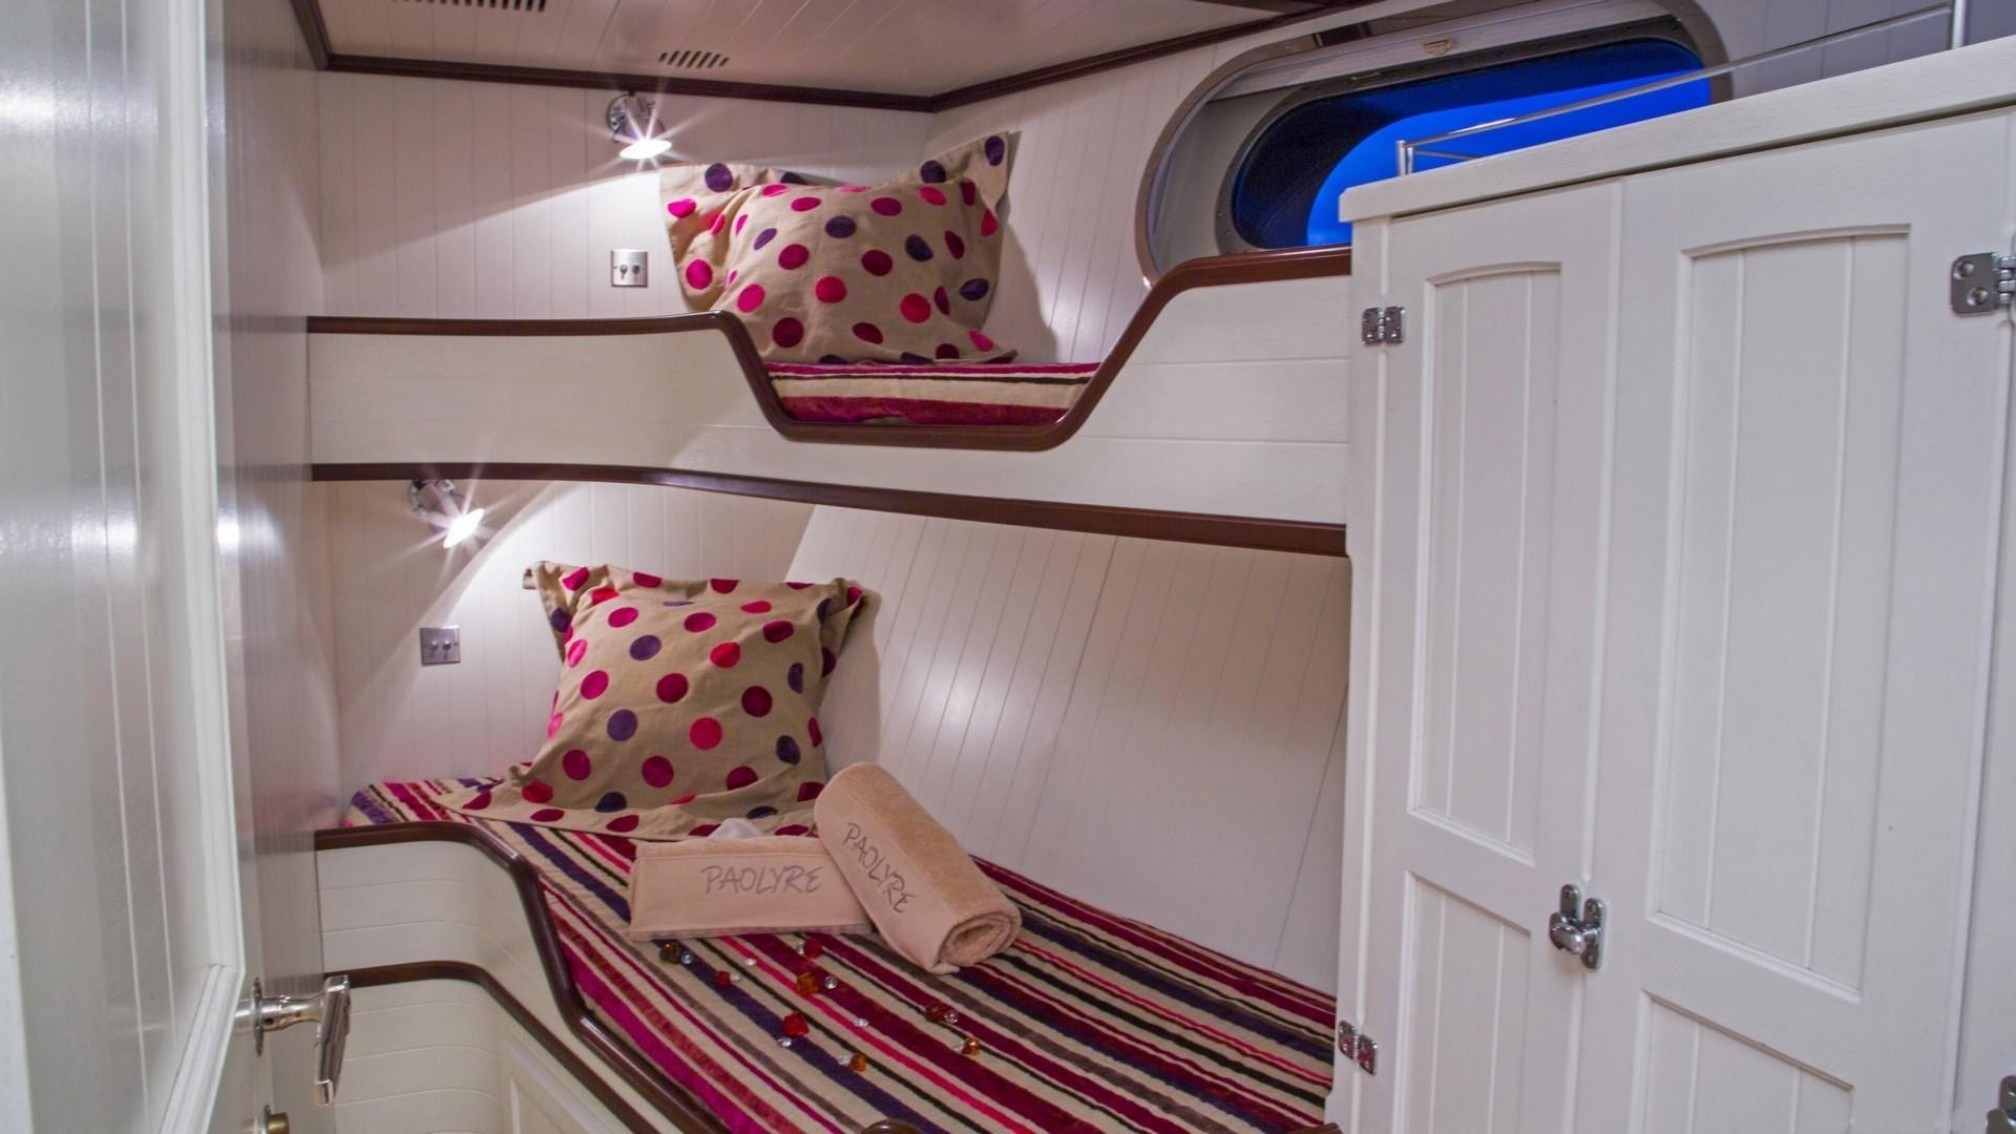 Paolyre Luxury Yacht Bedroom